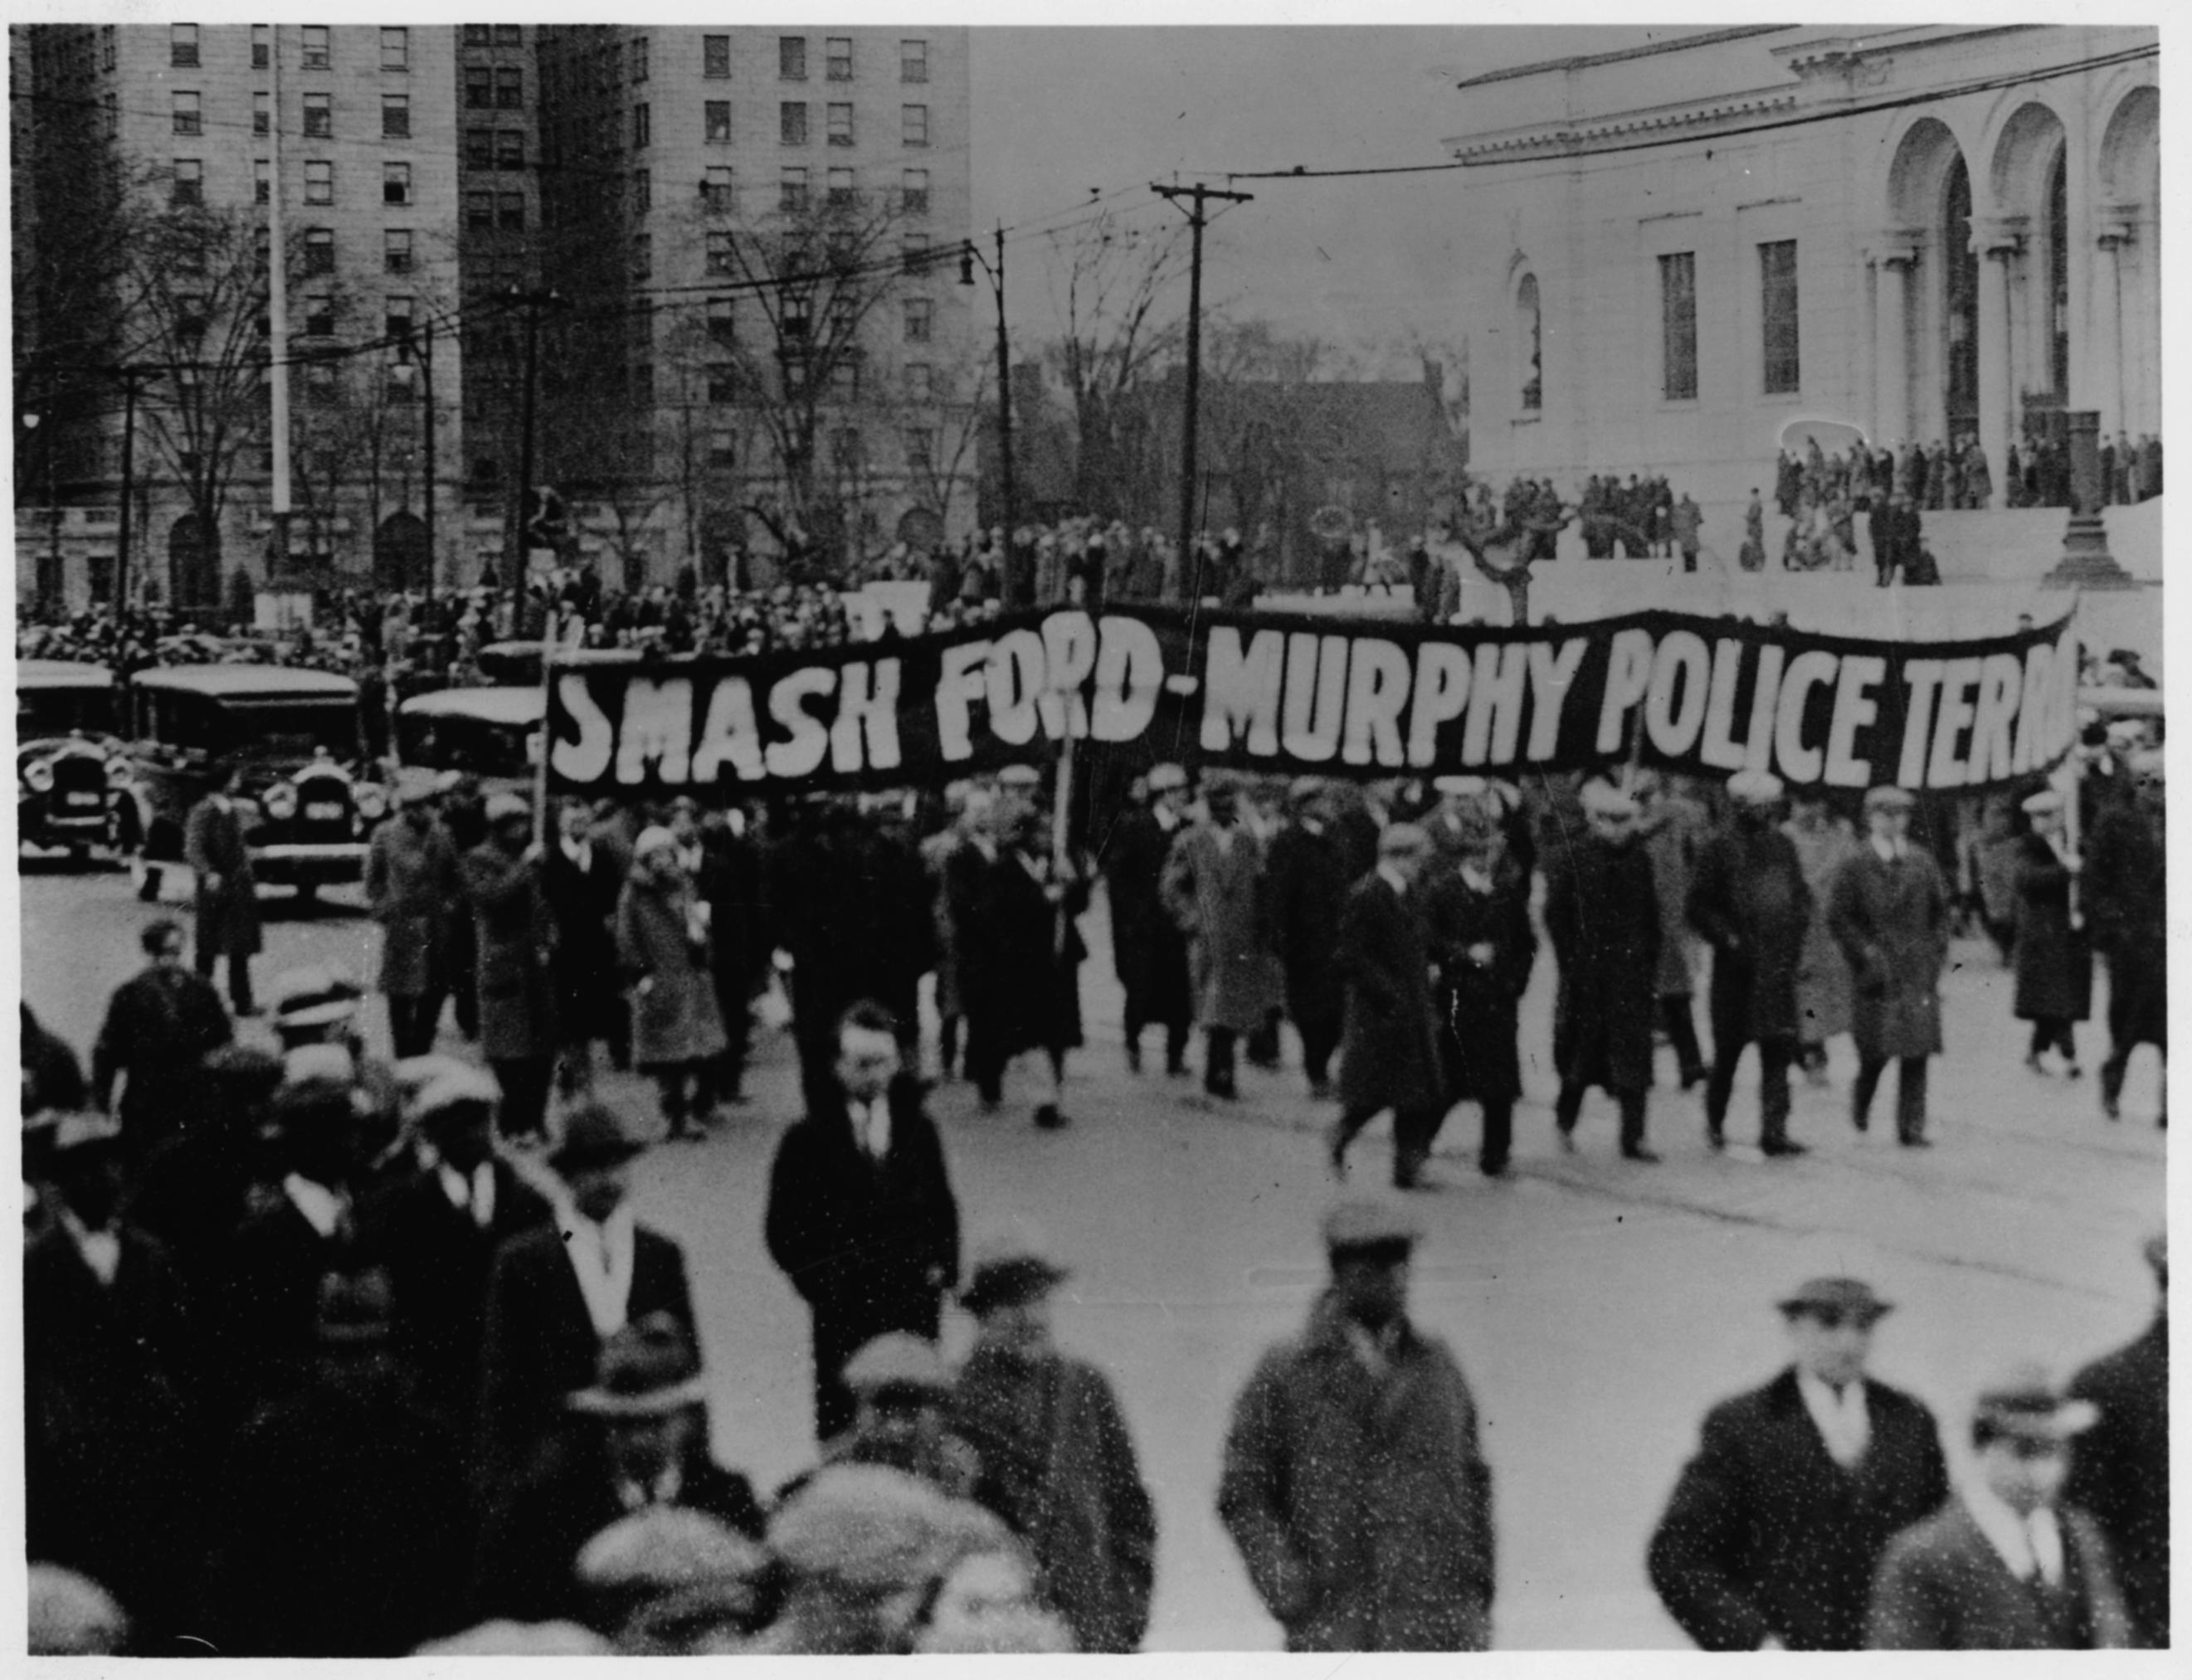 """Banner with the slogan of the funeral march held five days later- """"Smash Ford-Murphy Police Terror"""""""